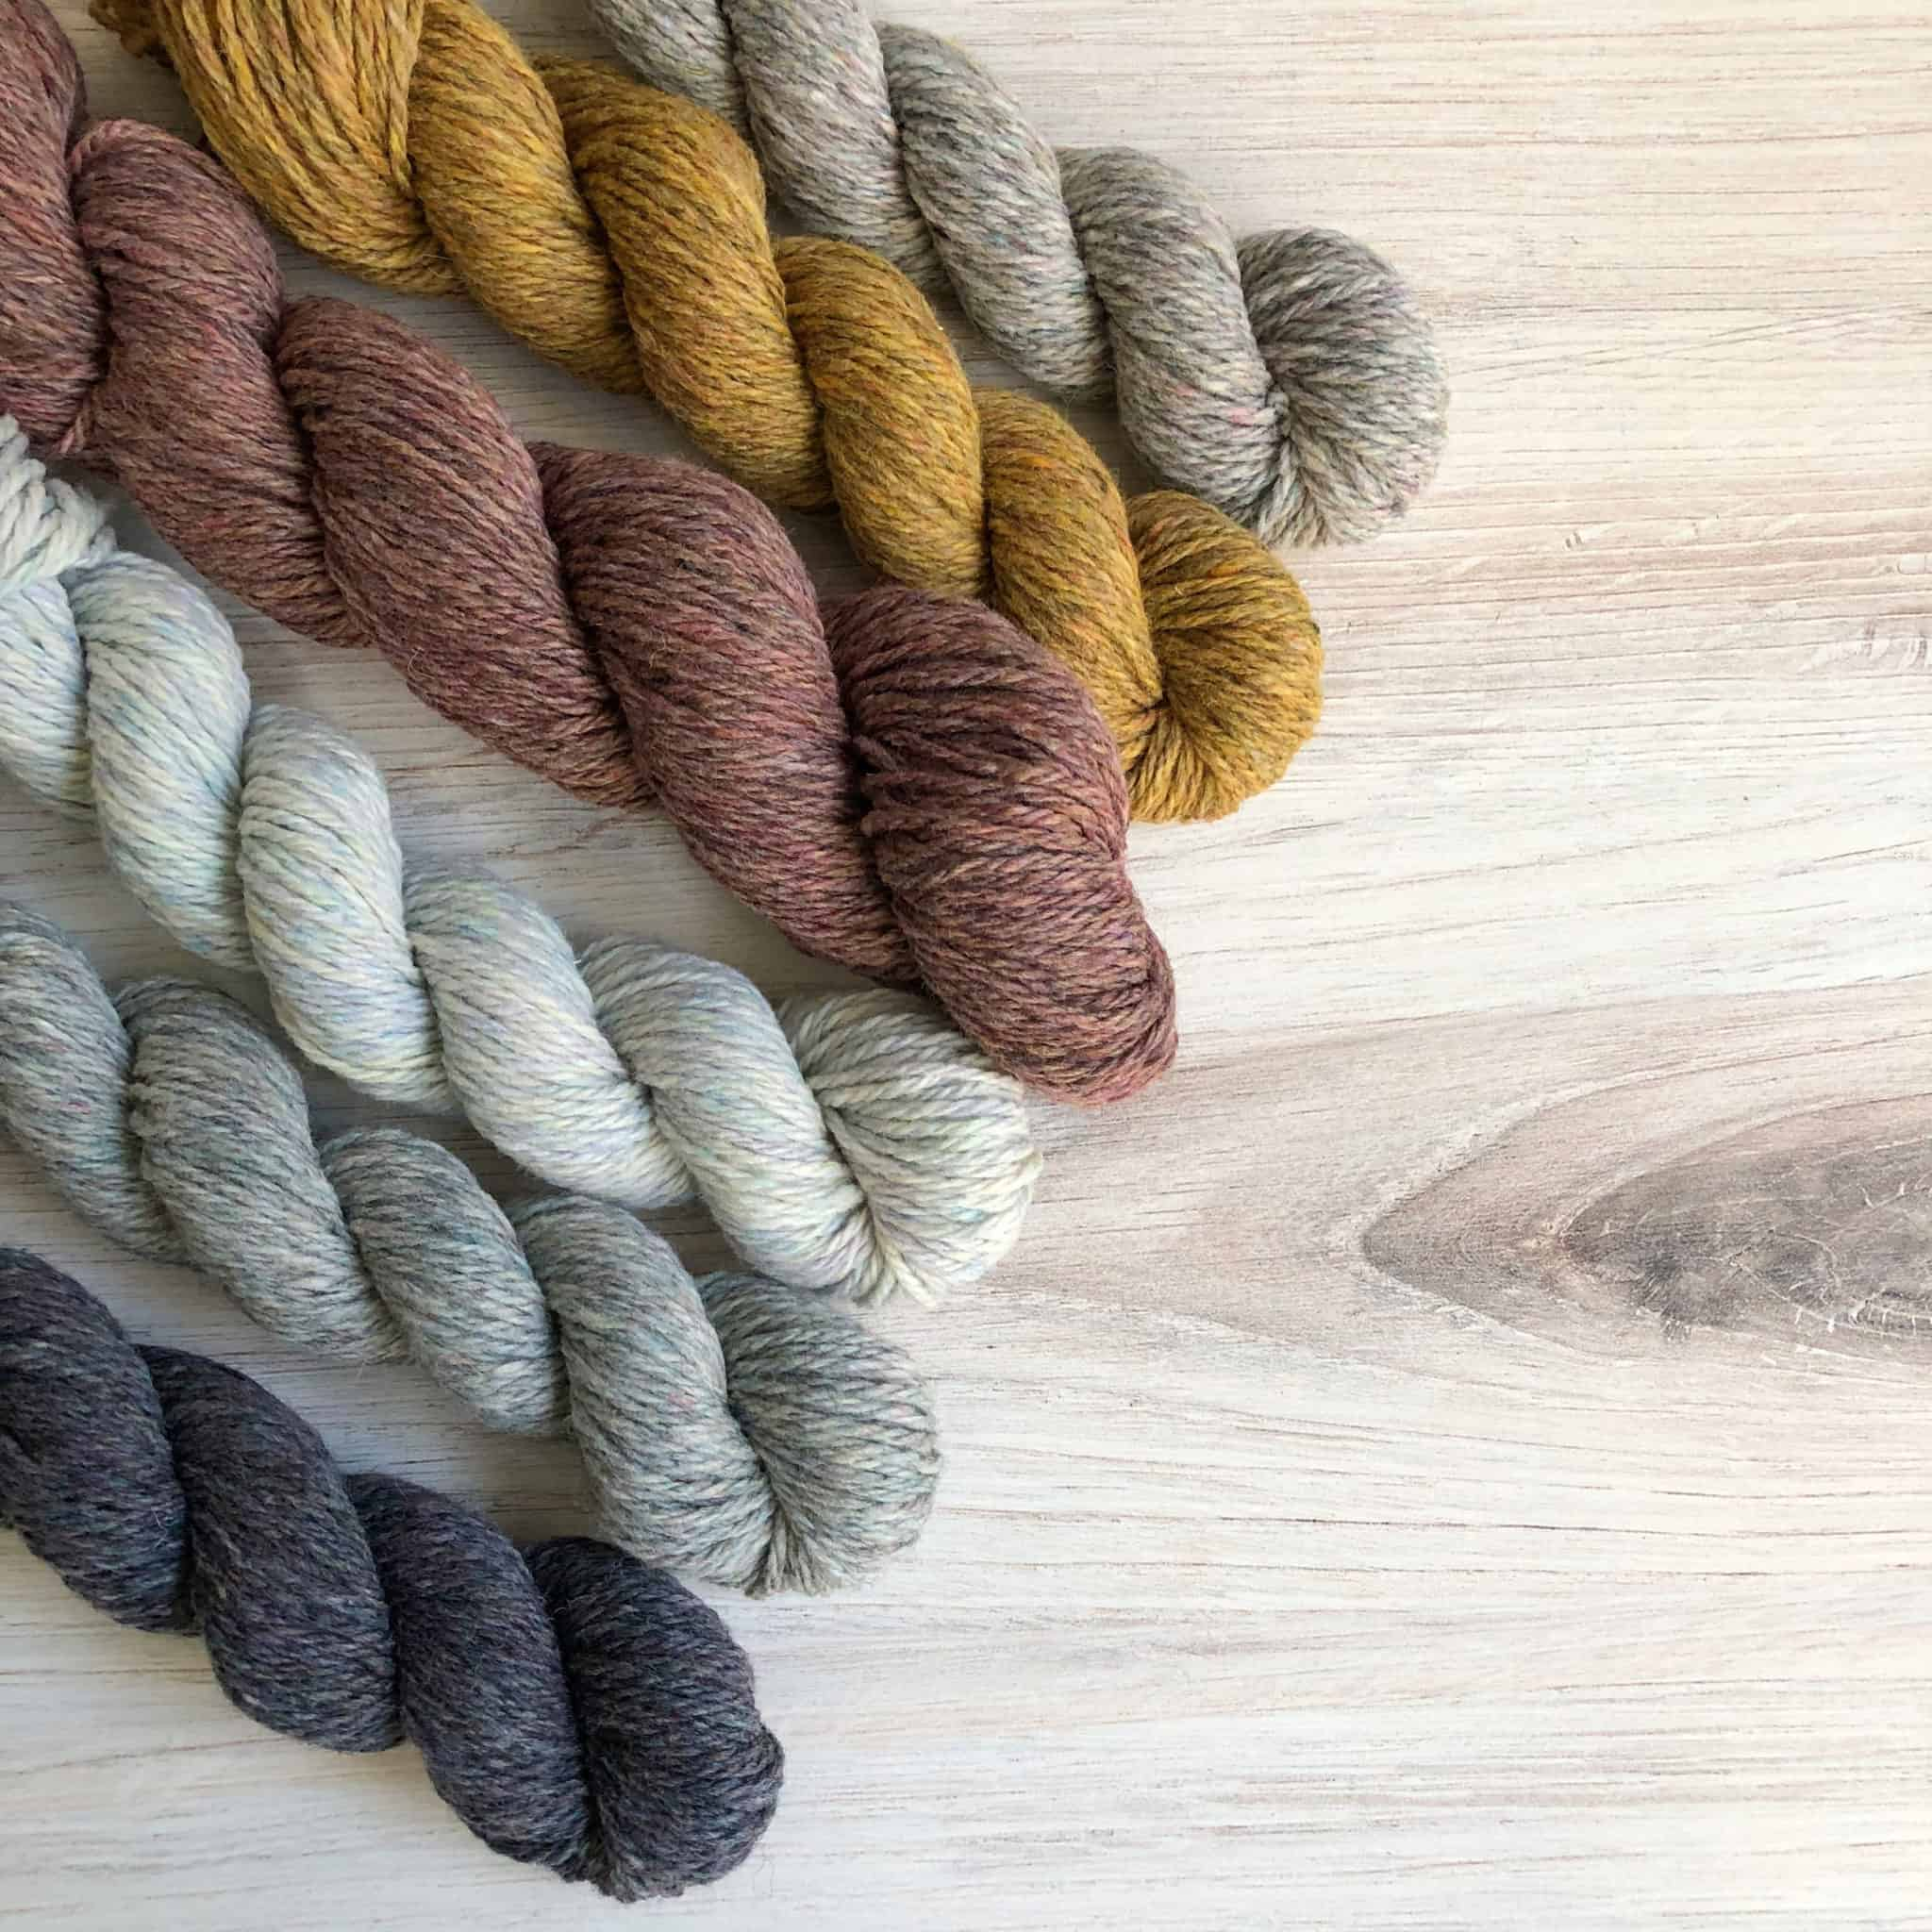 Skeins of gray, white, pink and gold yarn.